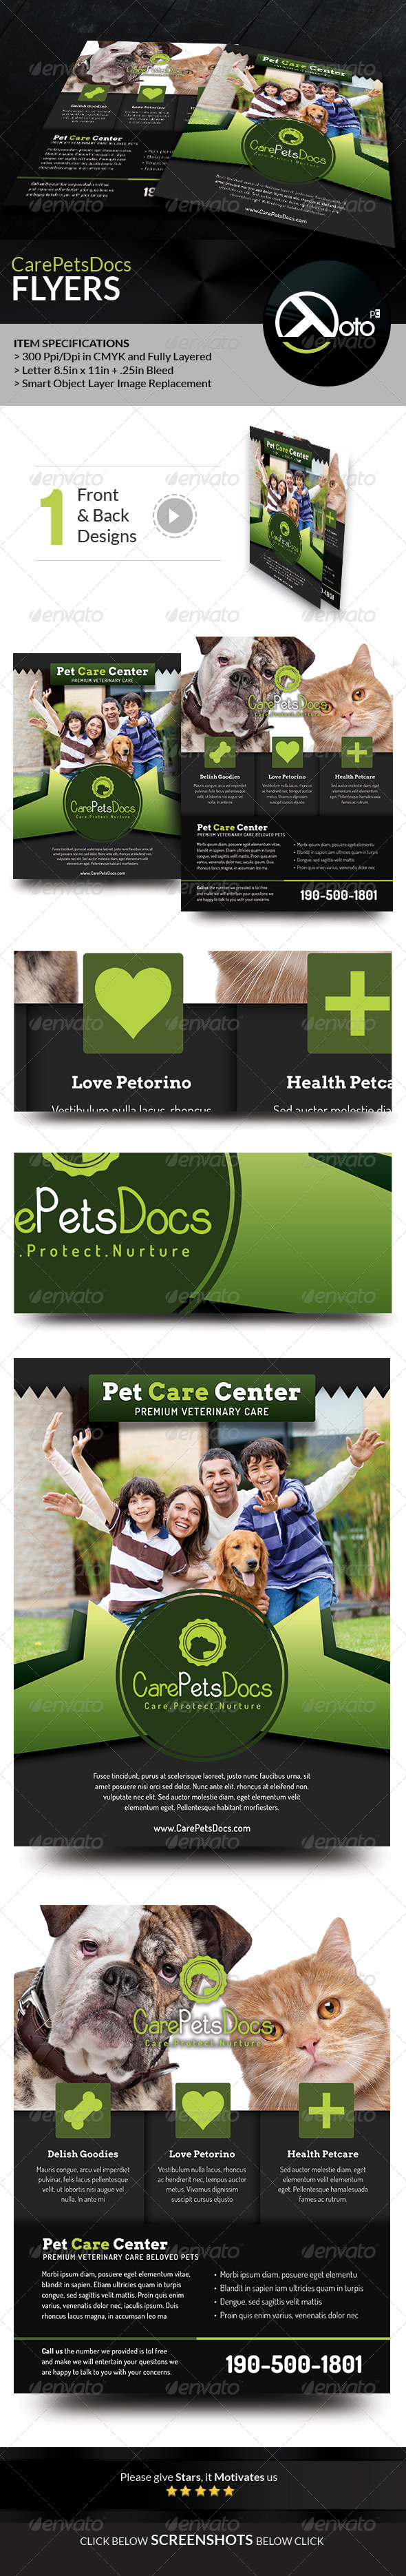 GraphicRiver Care Pets Docs Veterinary Flyers 8506700